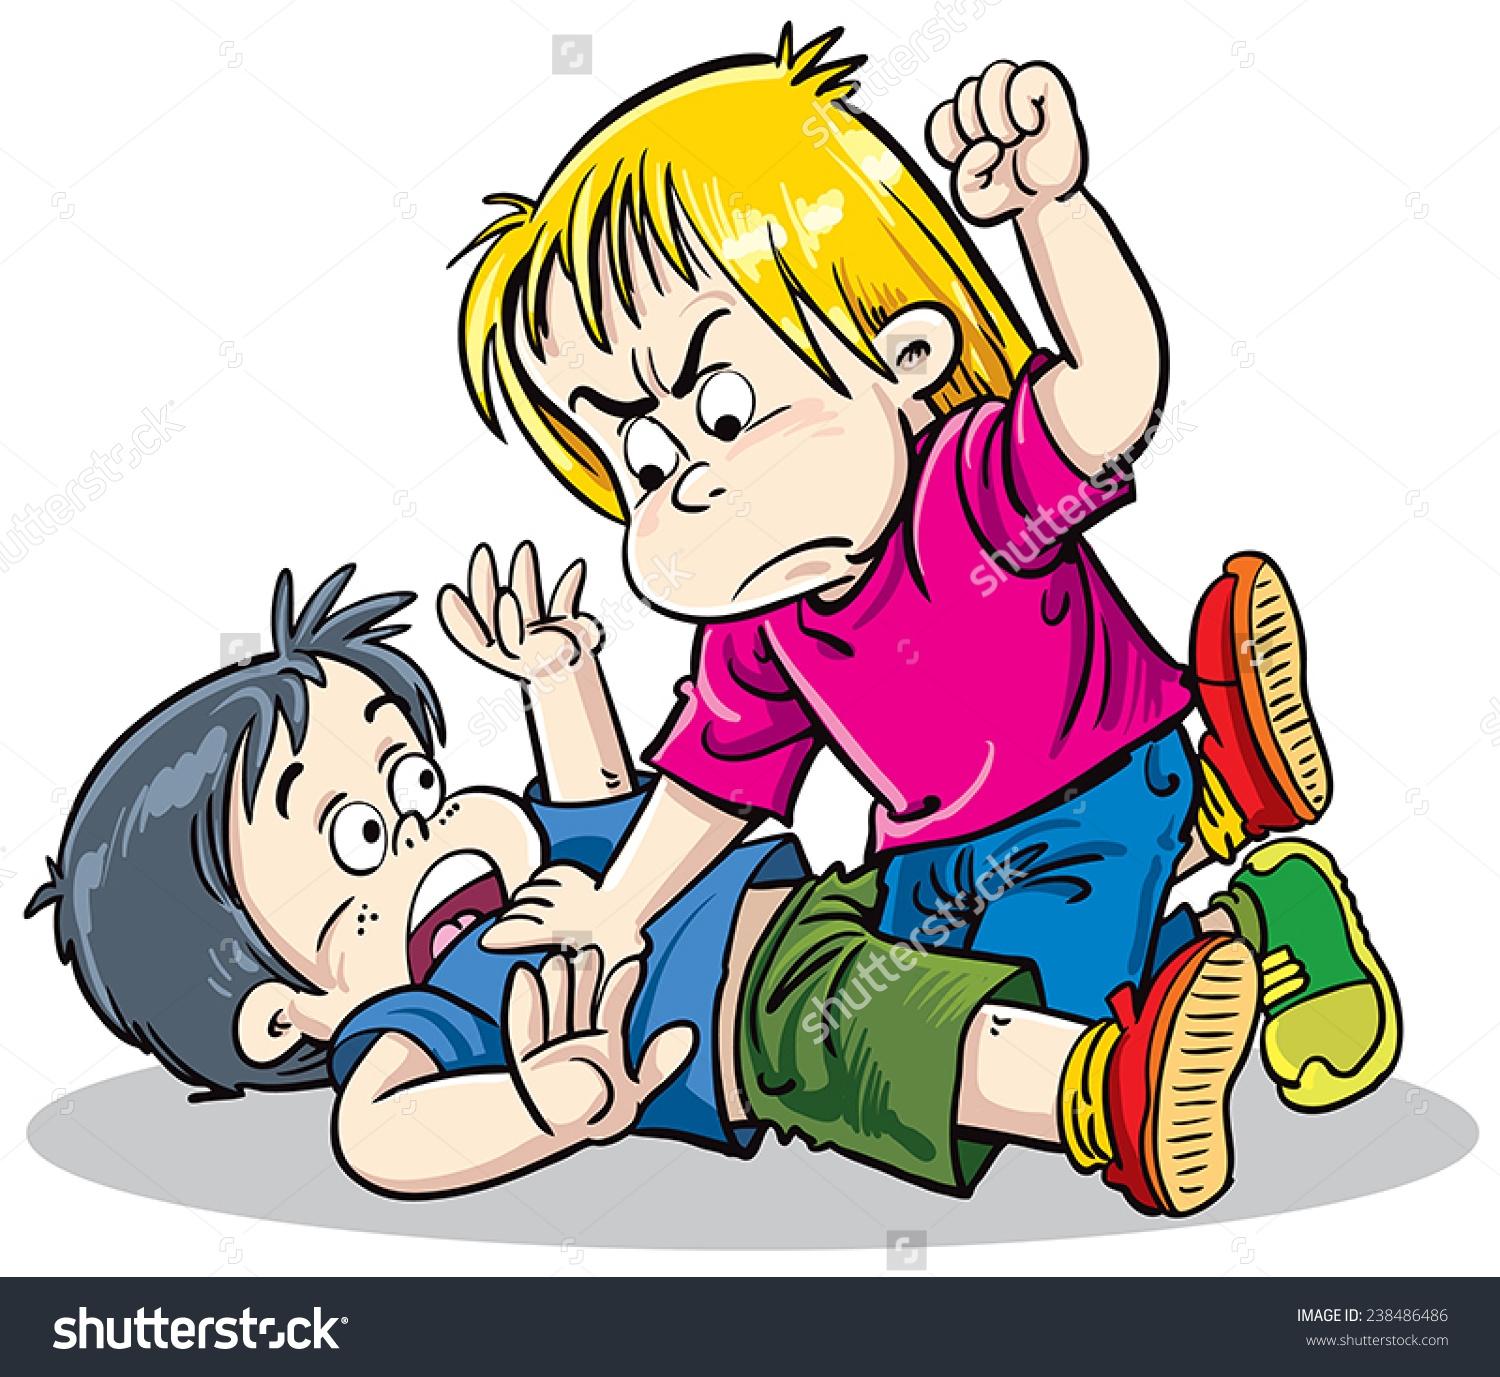 Best of fight collection. Fighting clipart